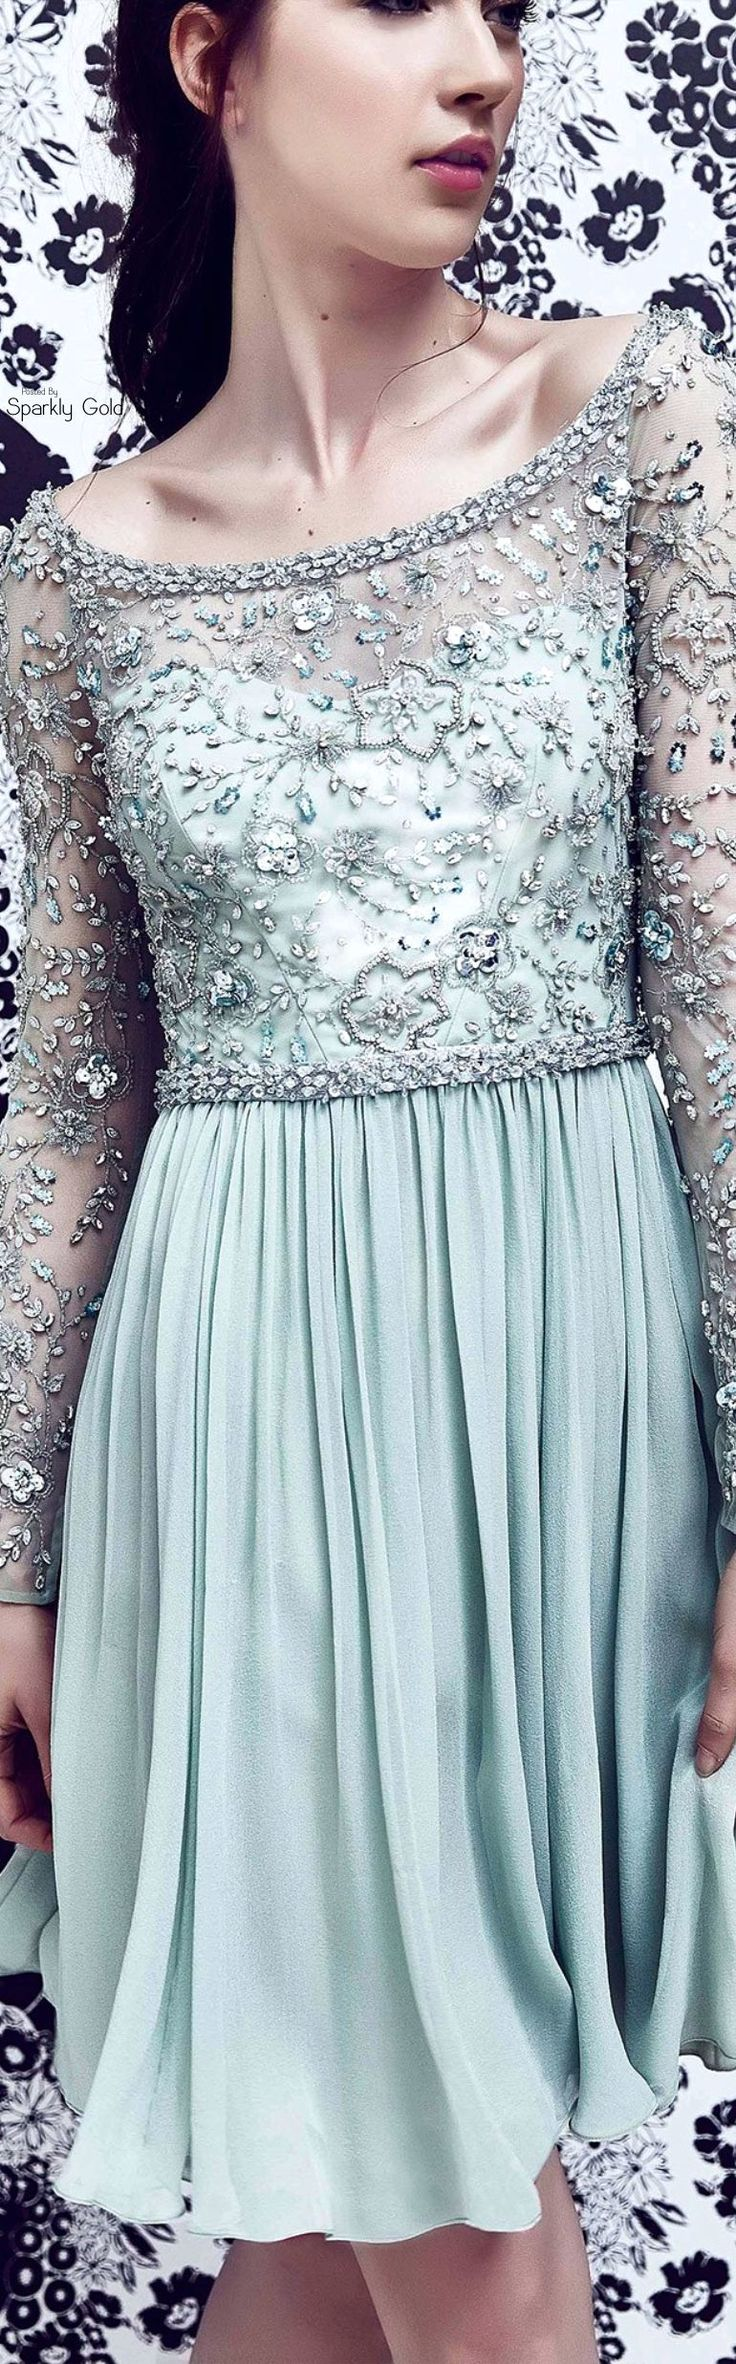 392 best Jenny Packham- images on Pinterest | Evening gowns, Fashion ...